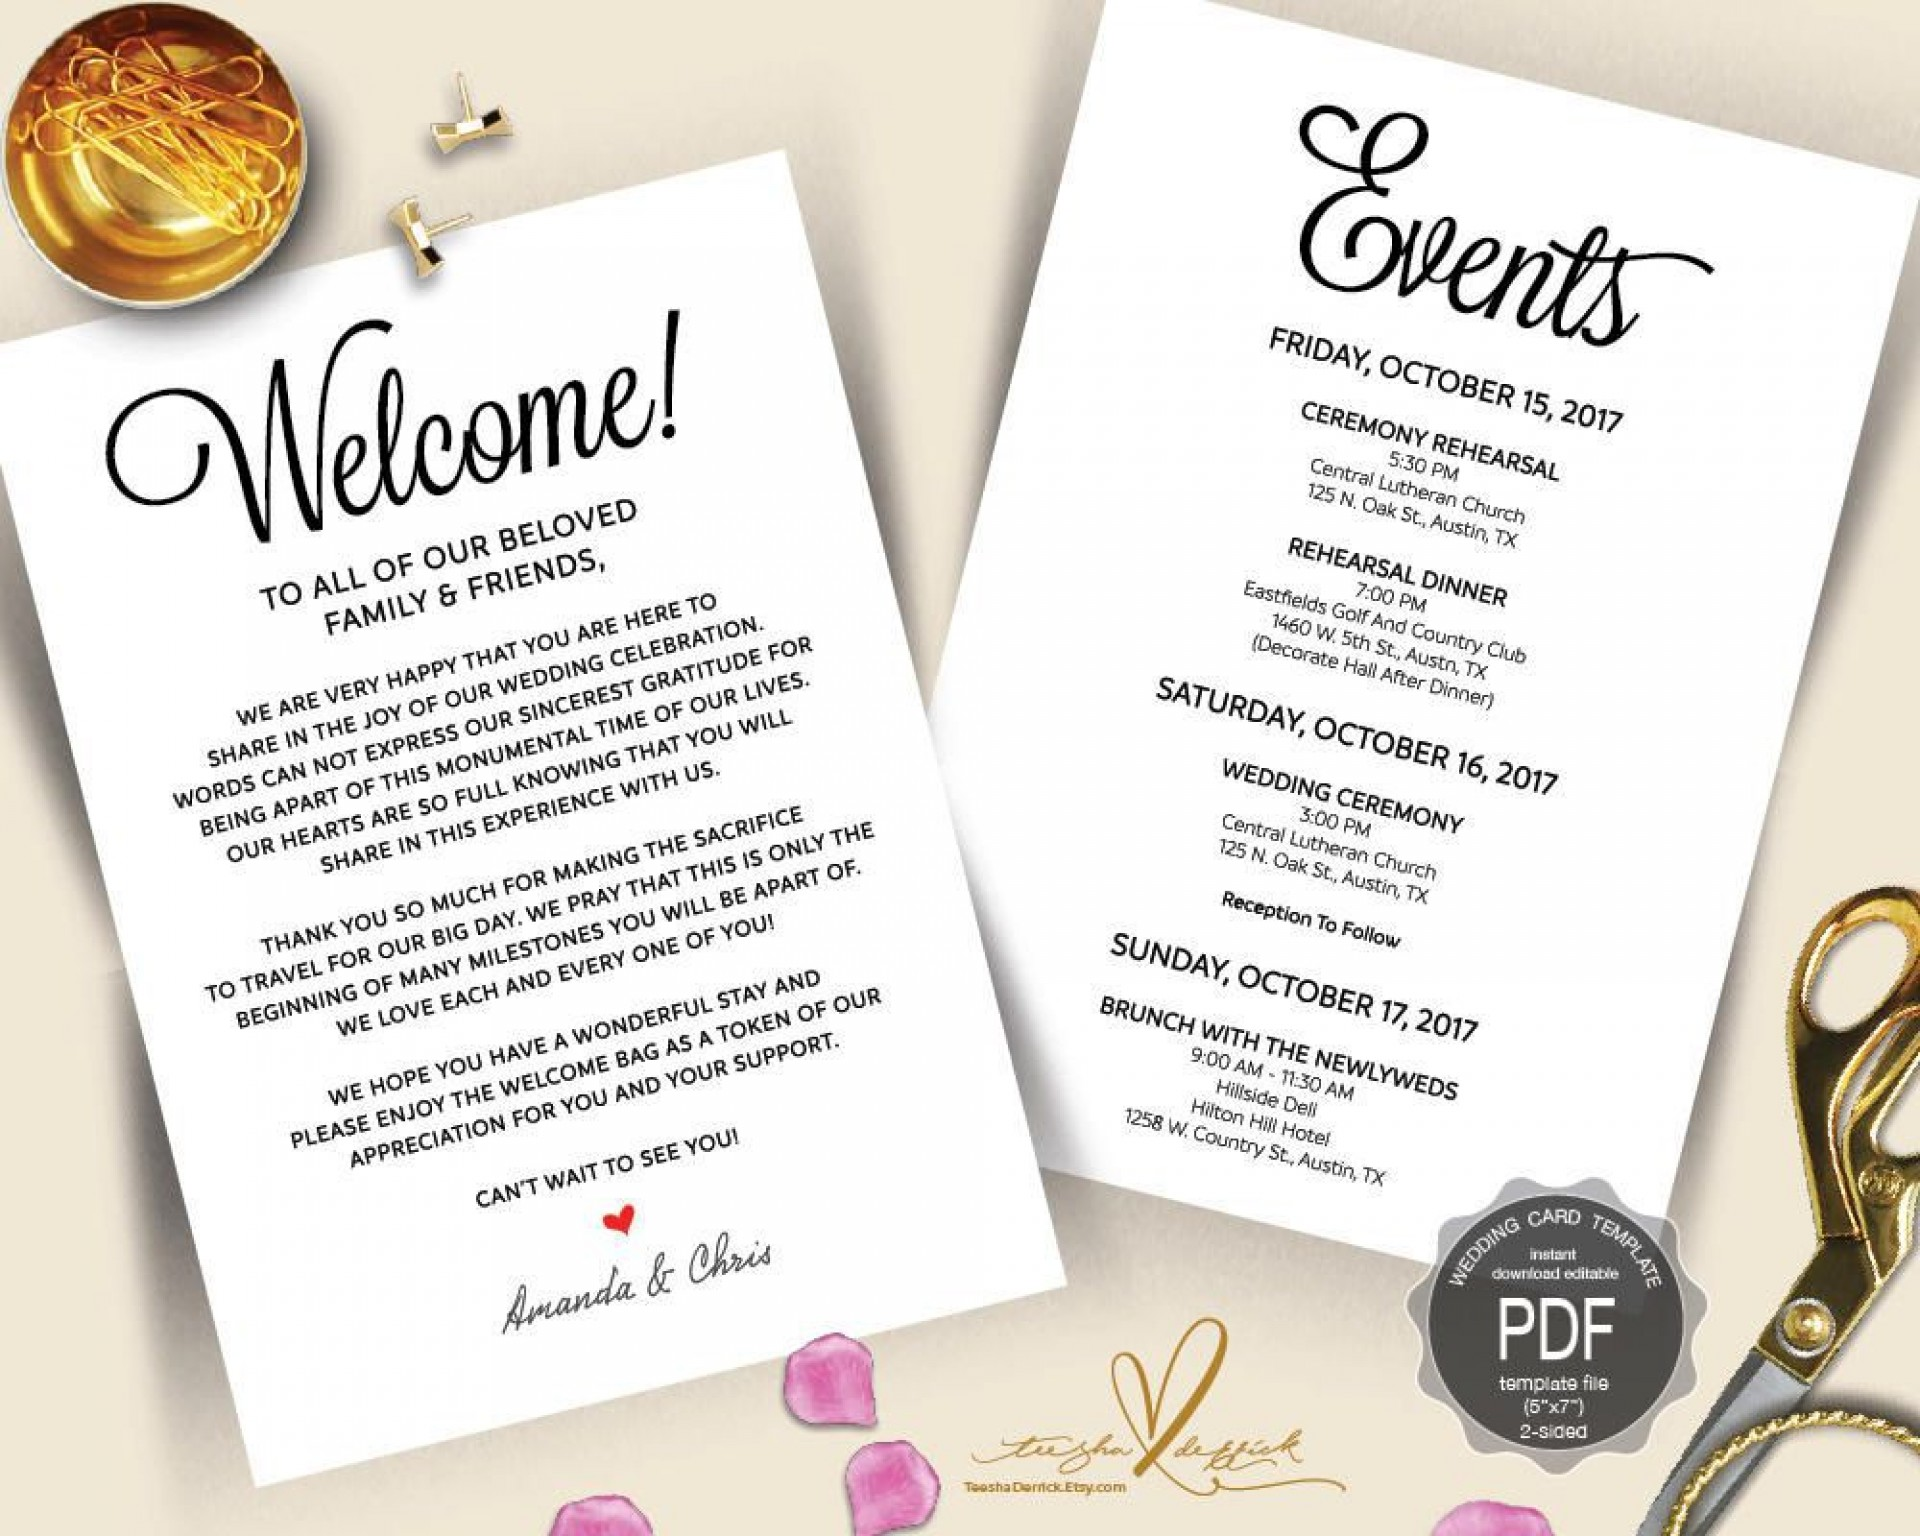 003 Fantastic Destination Wedding Itinerary Template Highest Clarity  Welcome Letter And Sample Free1920